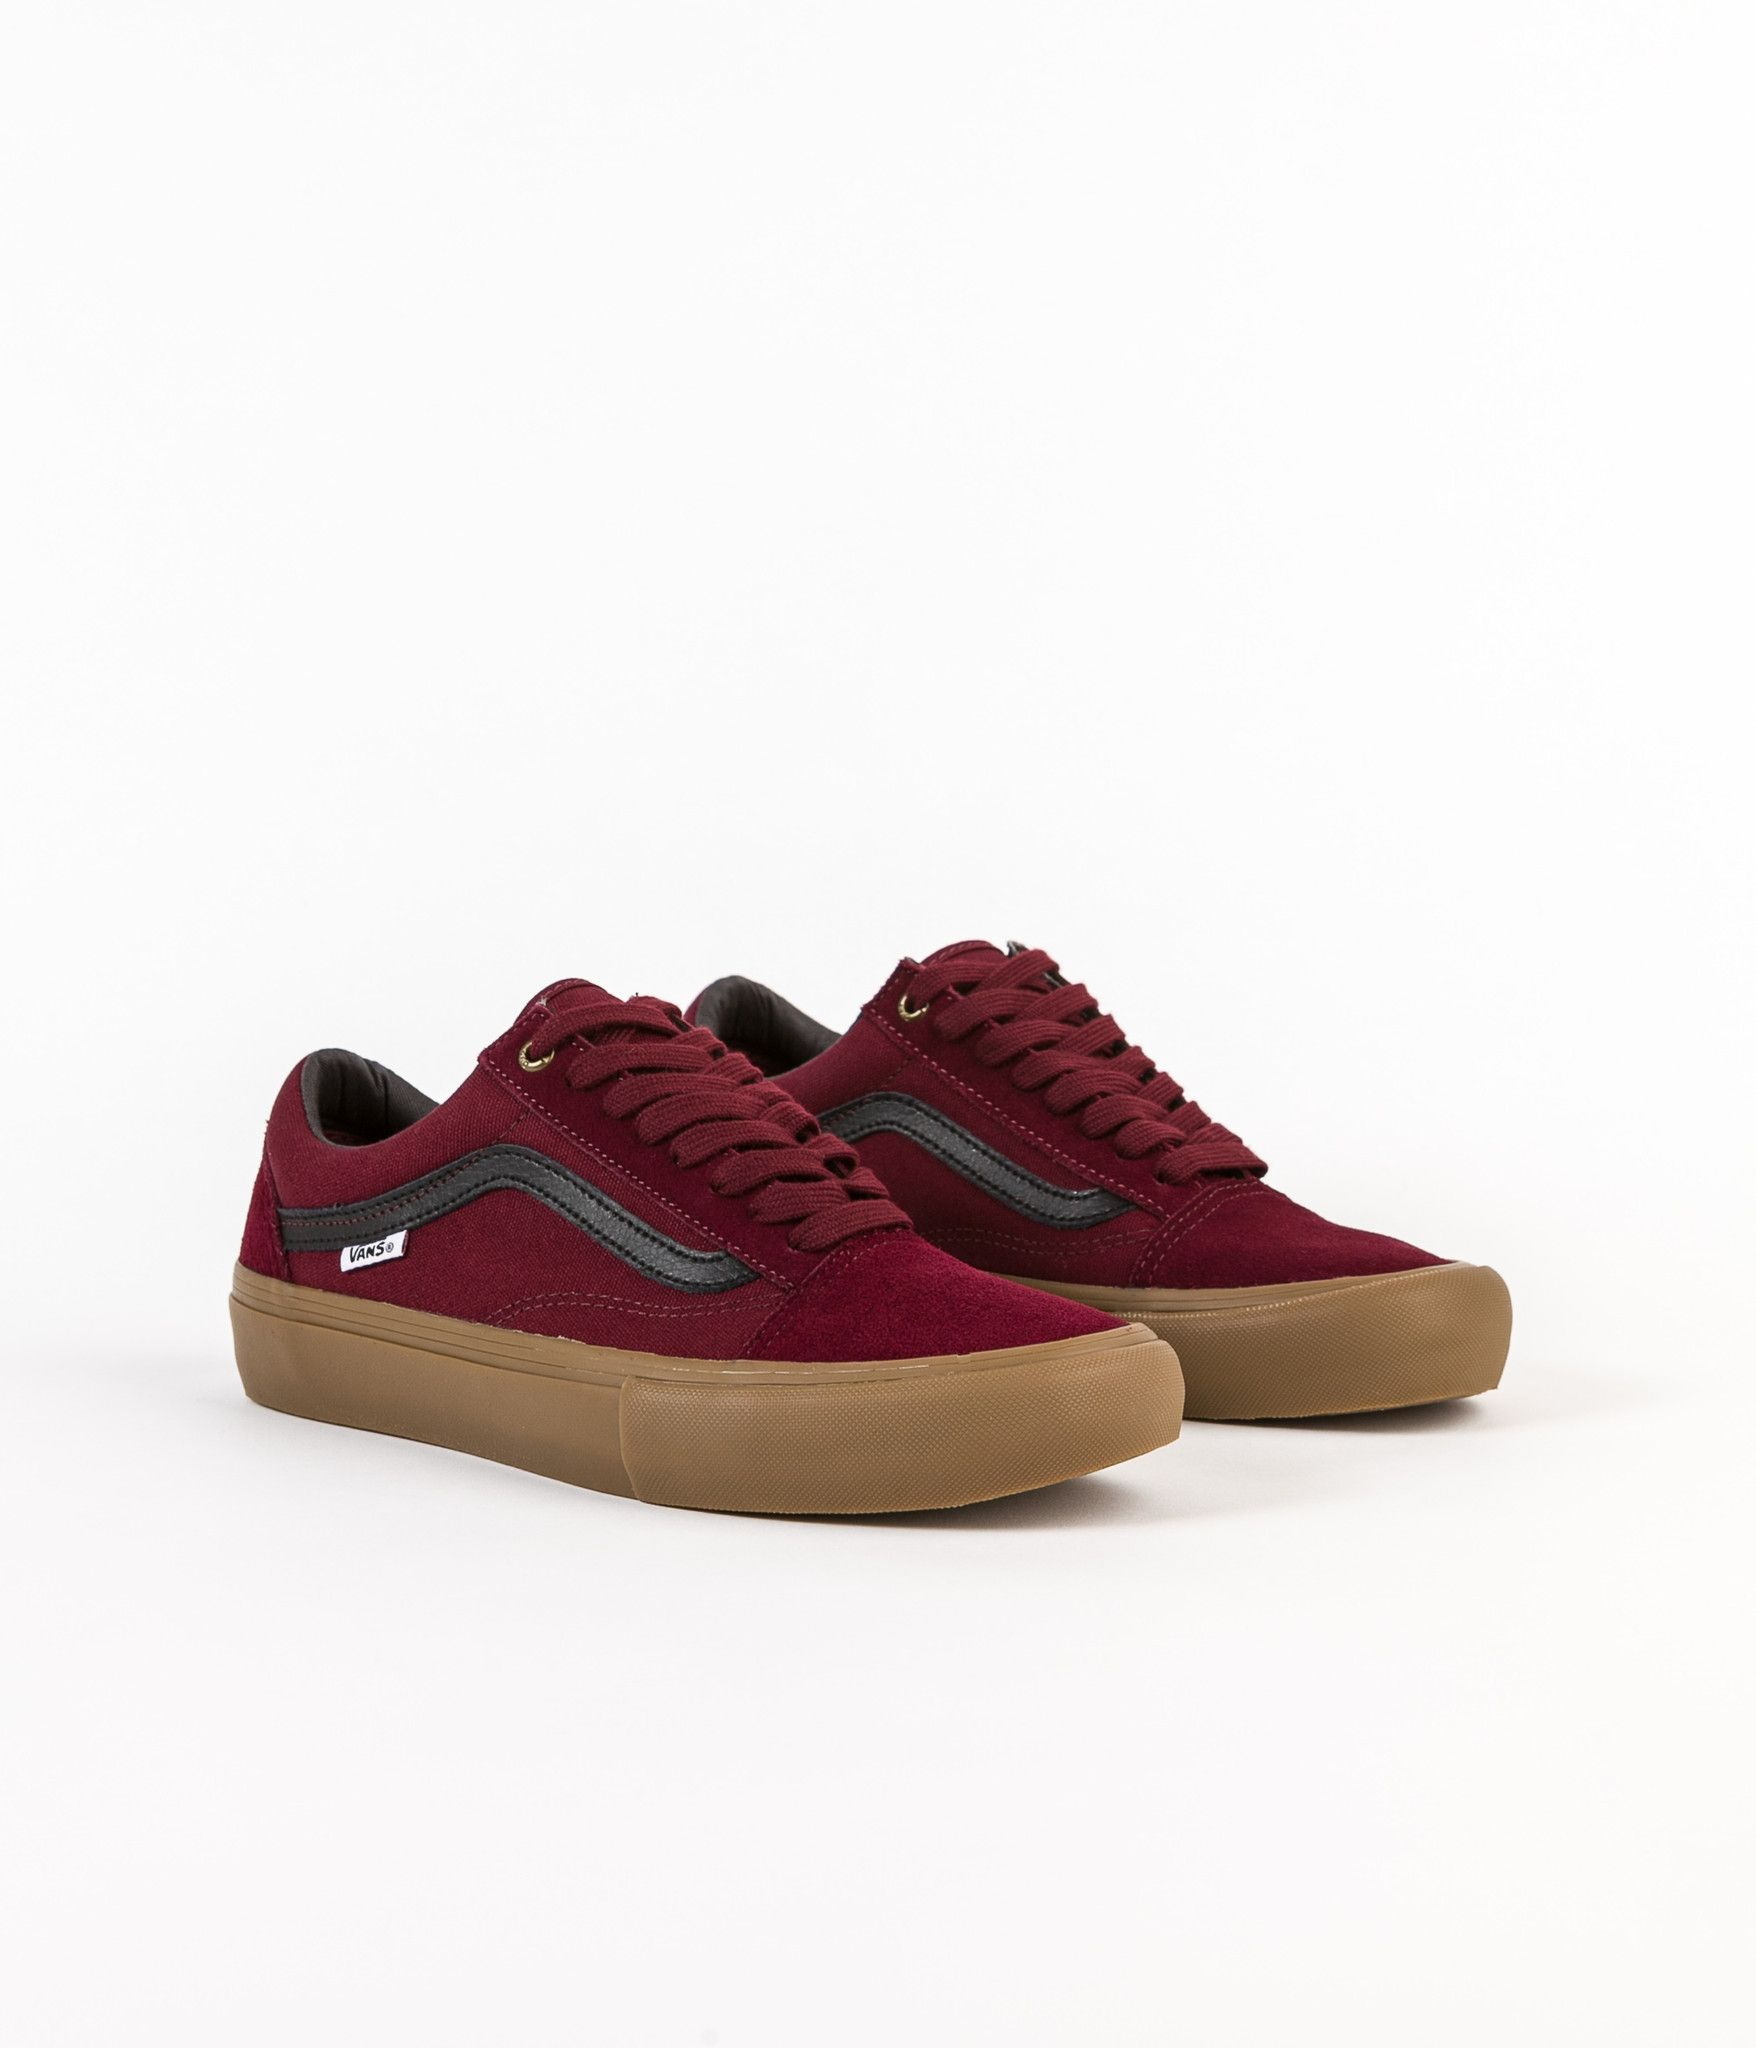 6c0935588851 Vans Old Skool Pro Shoes - Port   Black   Gum